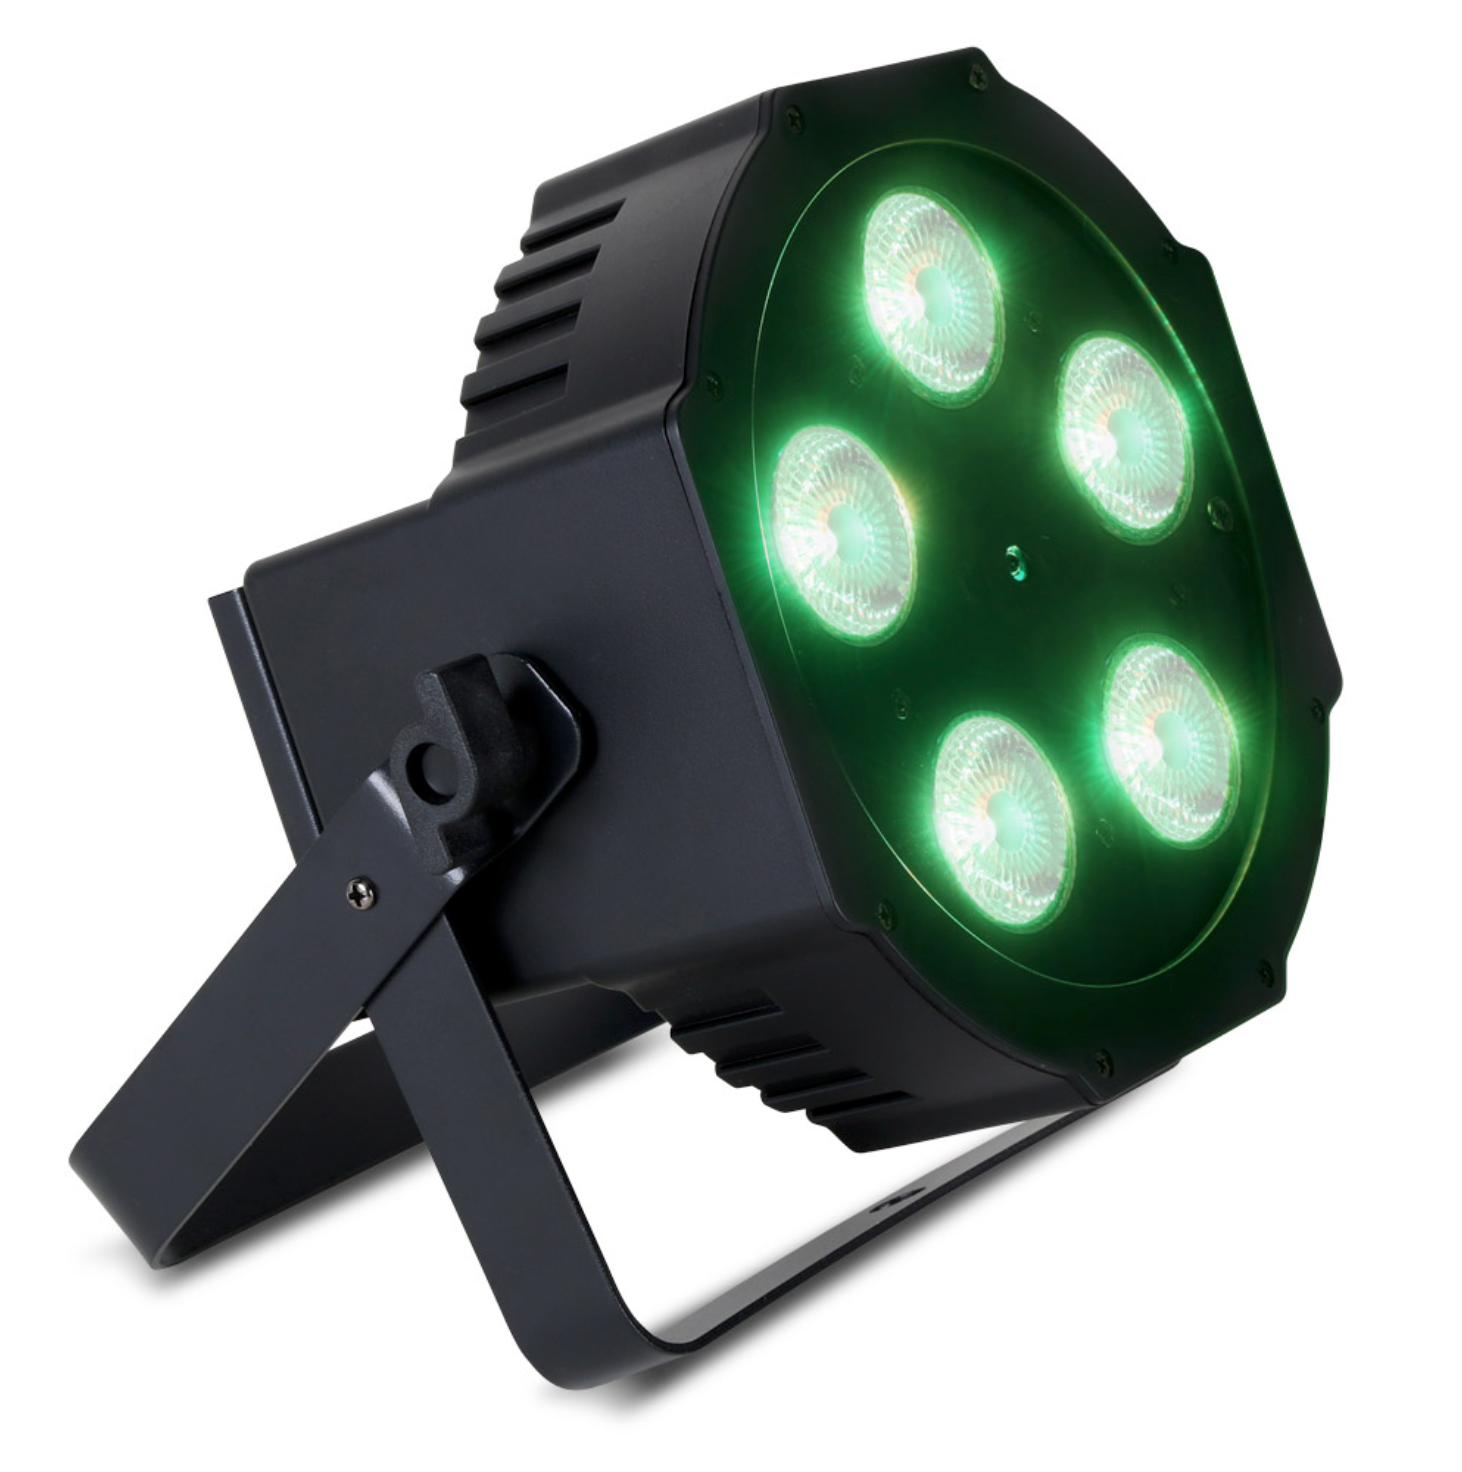 MARTIN THRILL COMPACT PAR64 LED